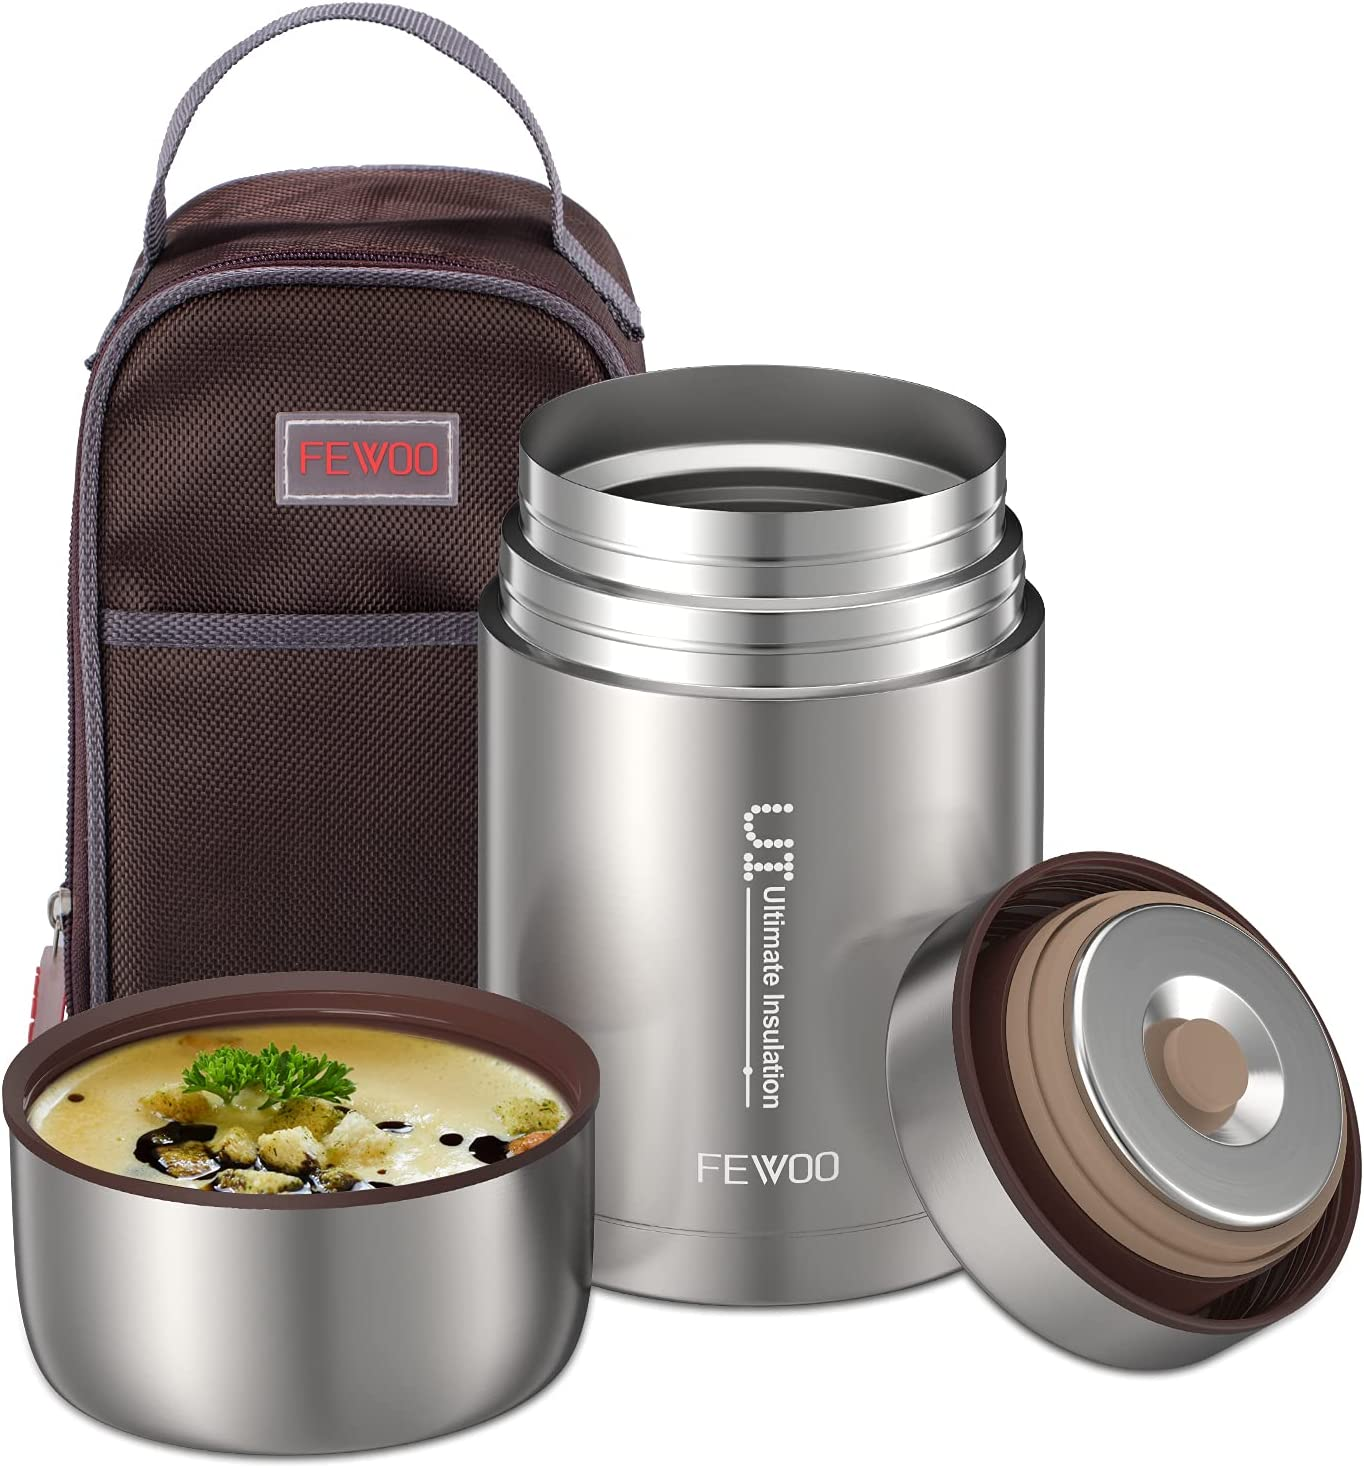 Food Jar - 27oz Vacuum Insulated Stainless Steel Lunch Thermos, Leak Proof Soup Containers with bag for Hot or Cold Food (Grey)